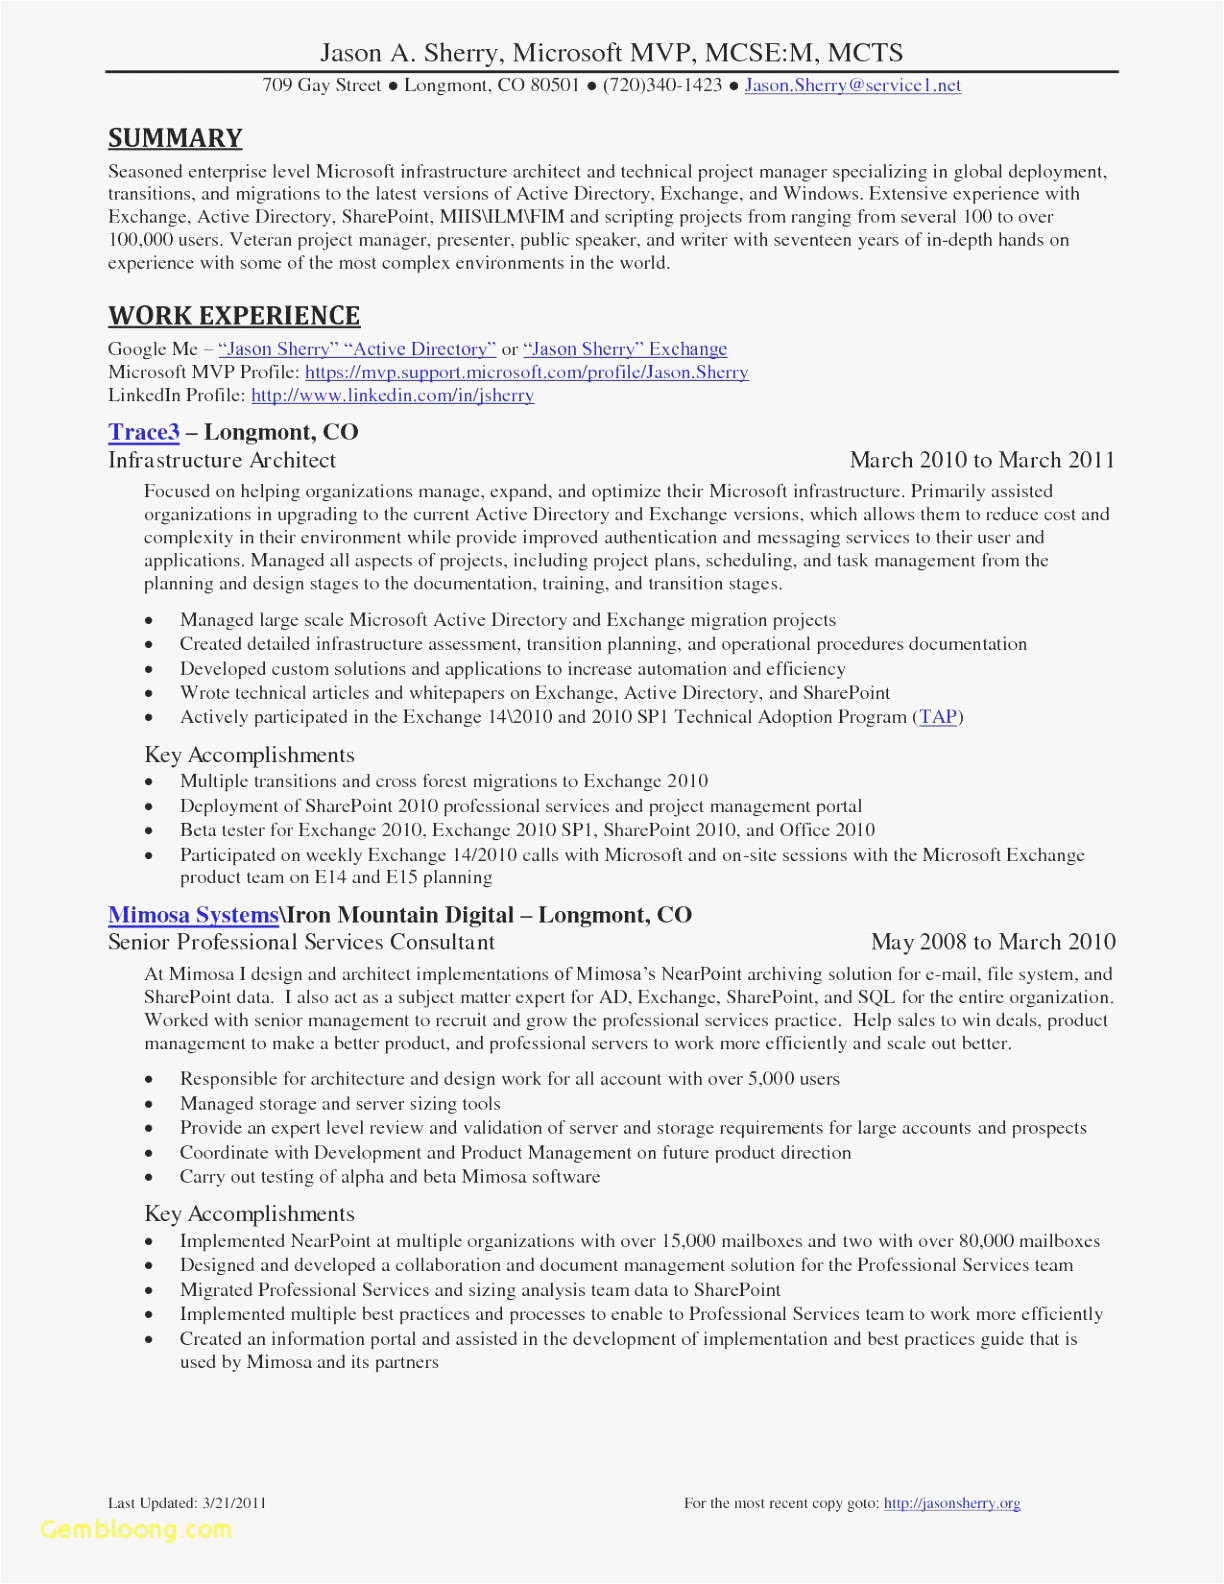 active directory resume format